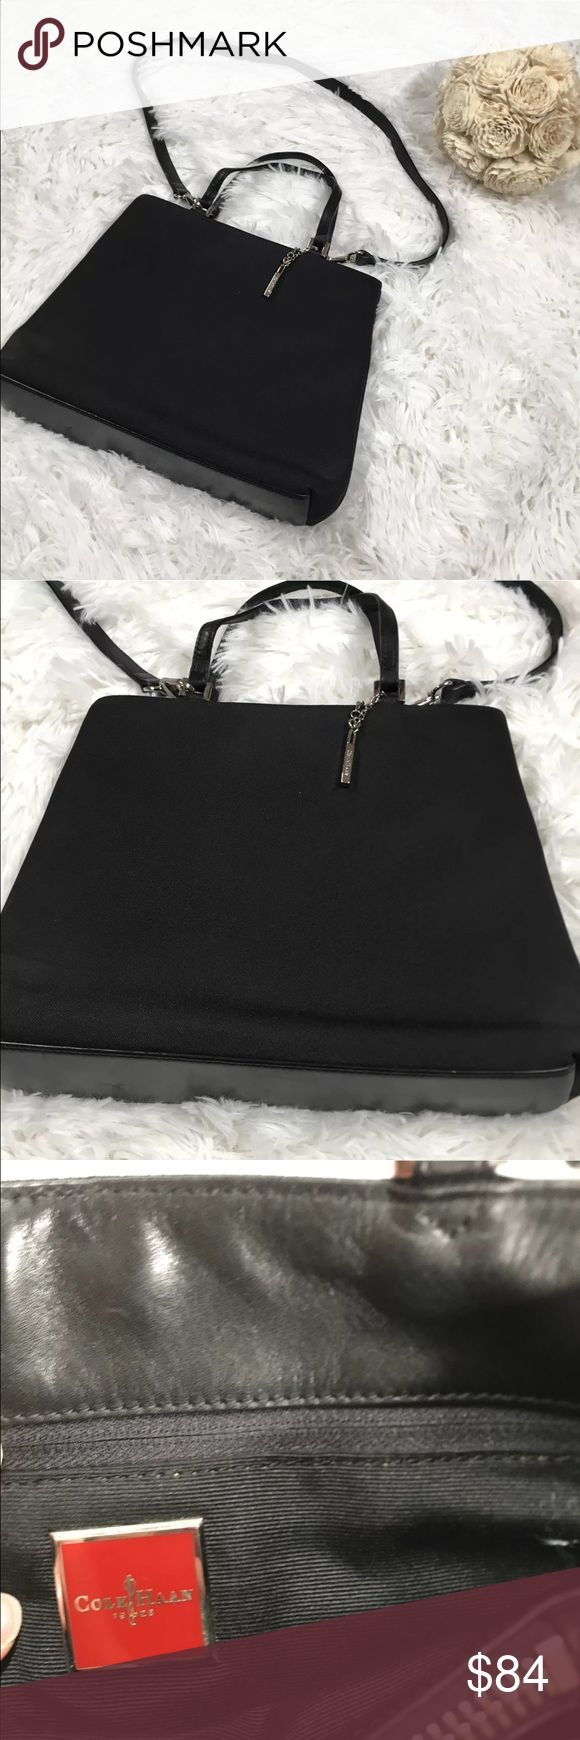 Vintage cole haan purse solid black 90's Cole Haan  Vintage 90's  Solid black shoulder bag  Leather straps and handles  See last photo for minor scratches INSIDE purse  Excellent condition otherwise! Cole Haan Bags Shoulder Bags